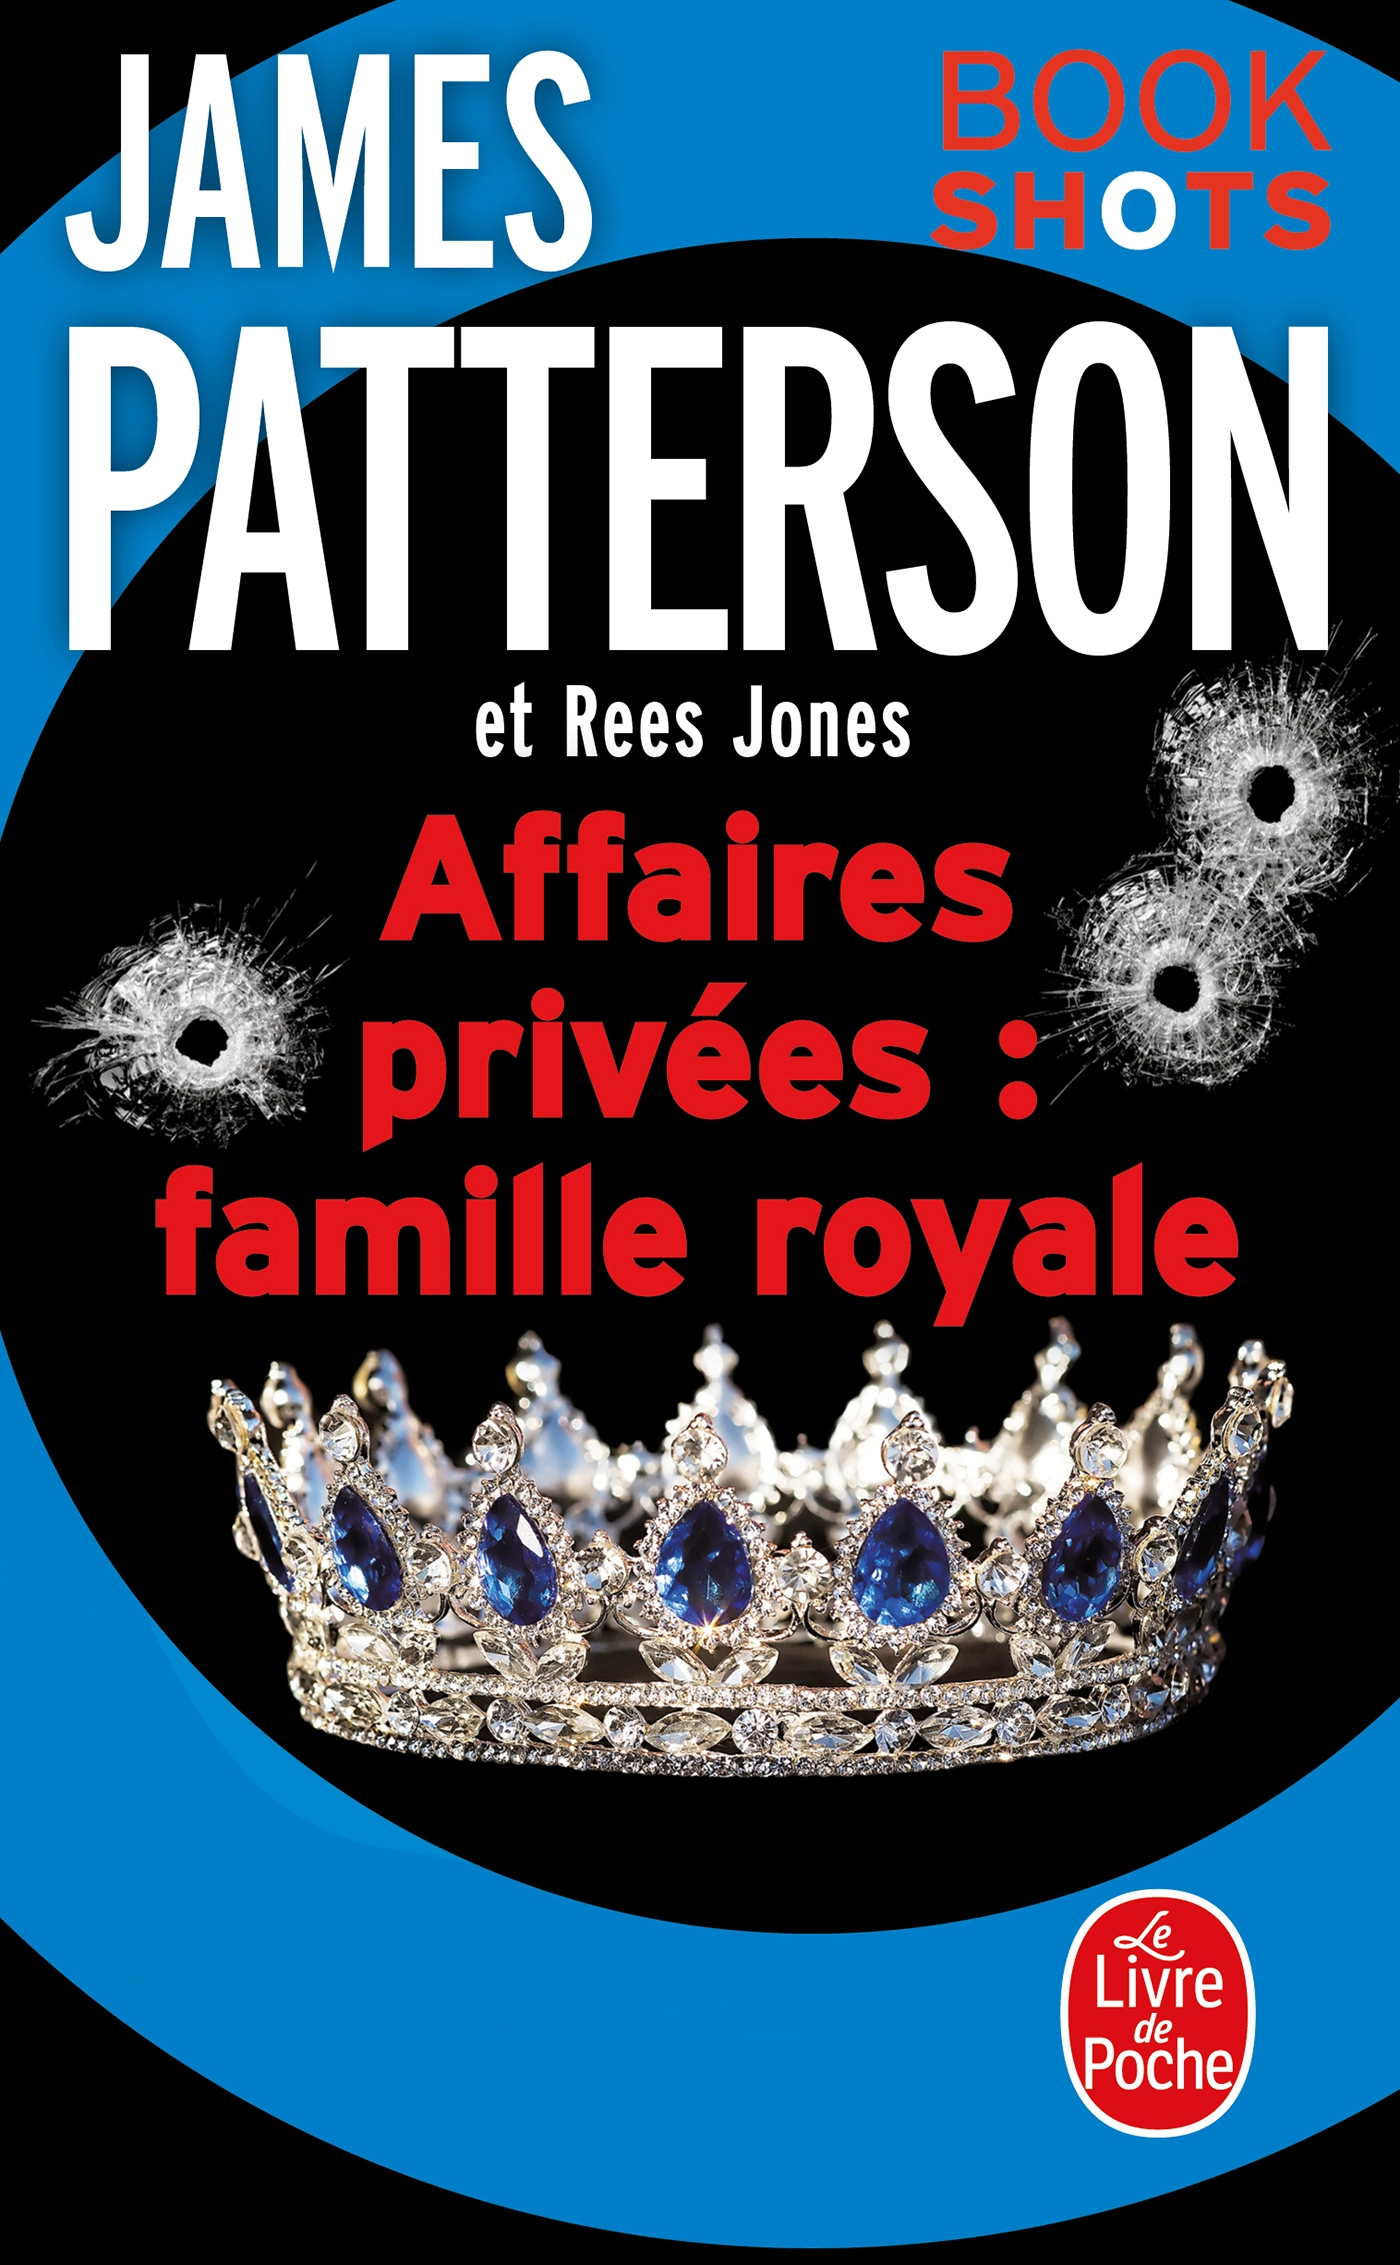 Affaires privées : Famille royale